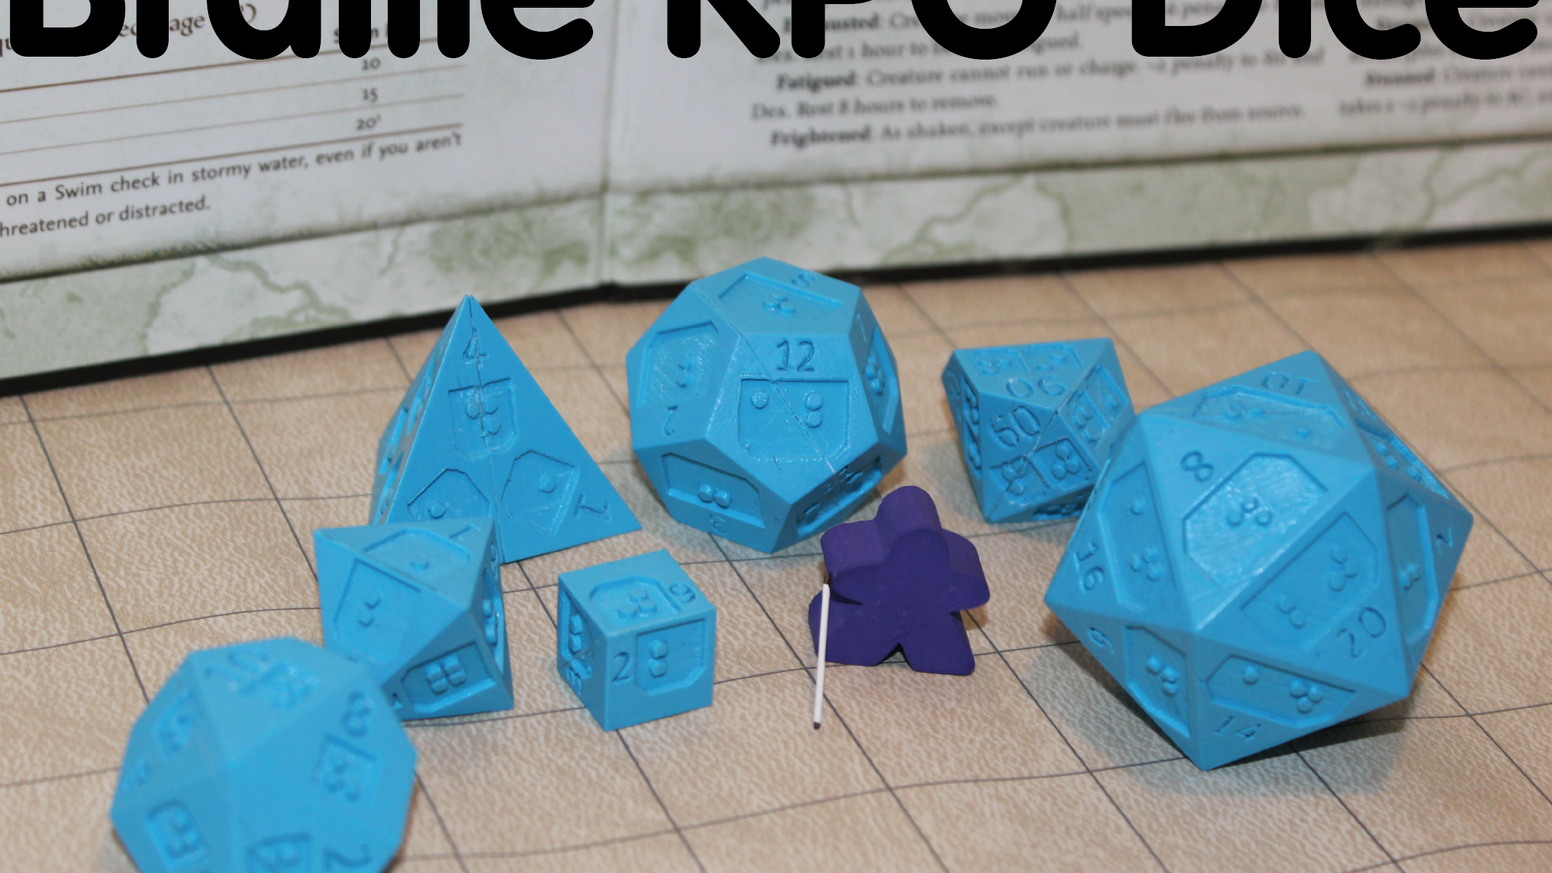 Braille Rpg Dice From 64 Oz Games By 64 Oz Games From A Blind